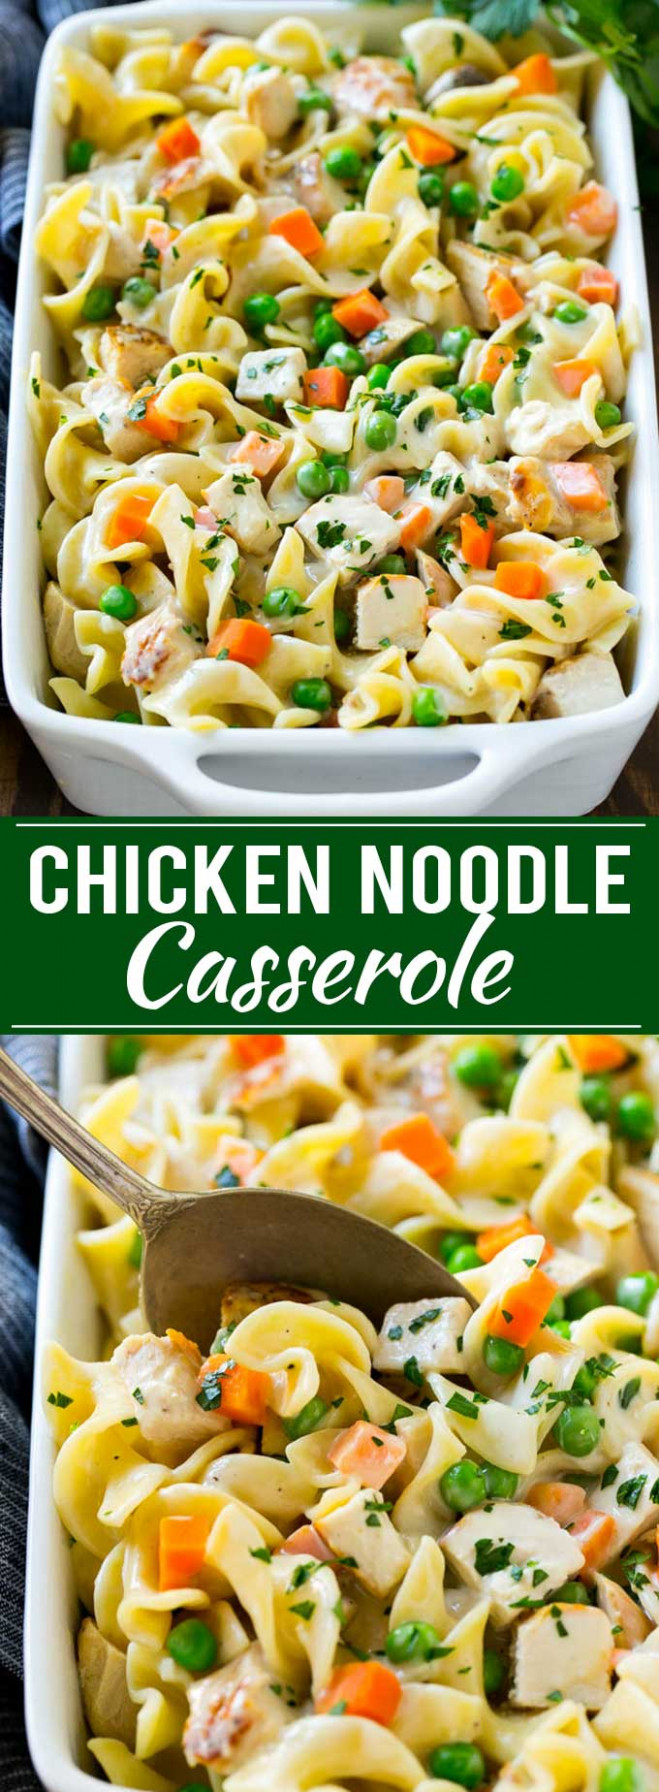 Chicken Noodle Casserole - chicken recipes casserole